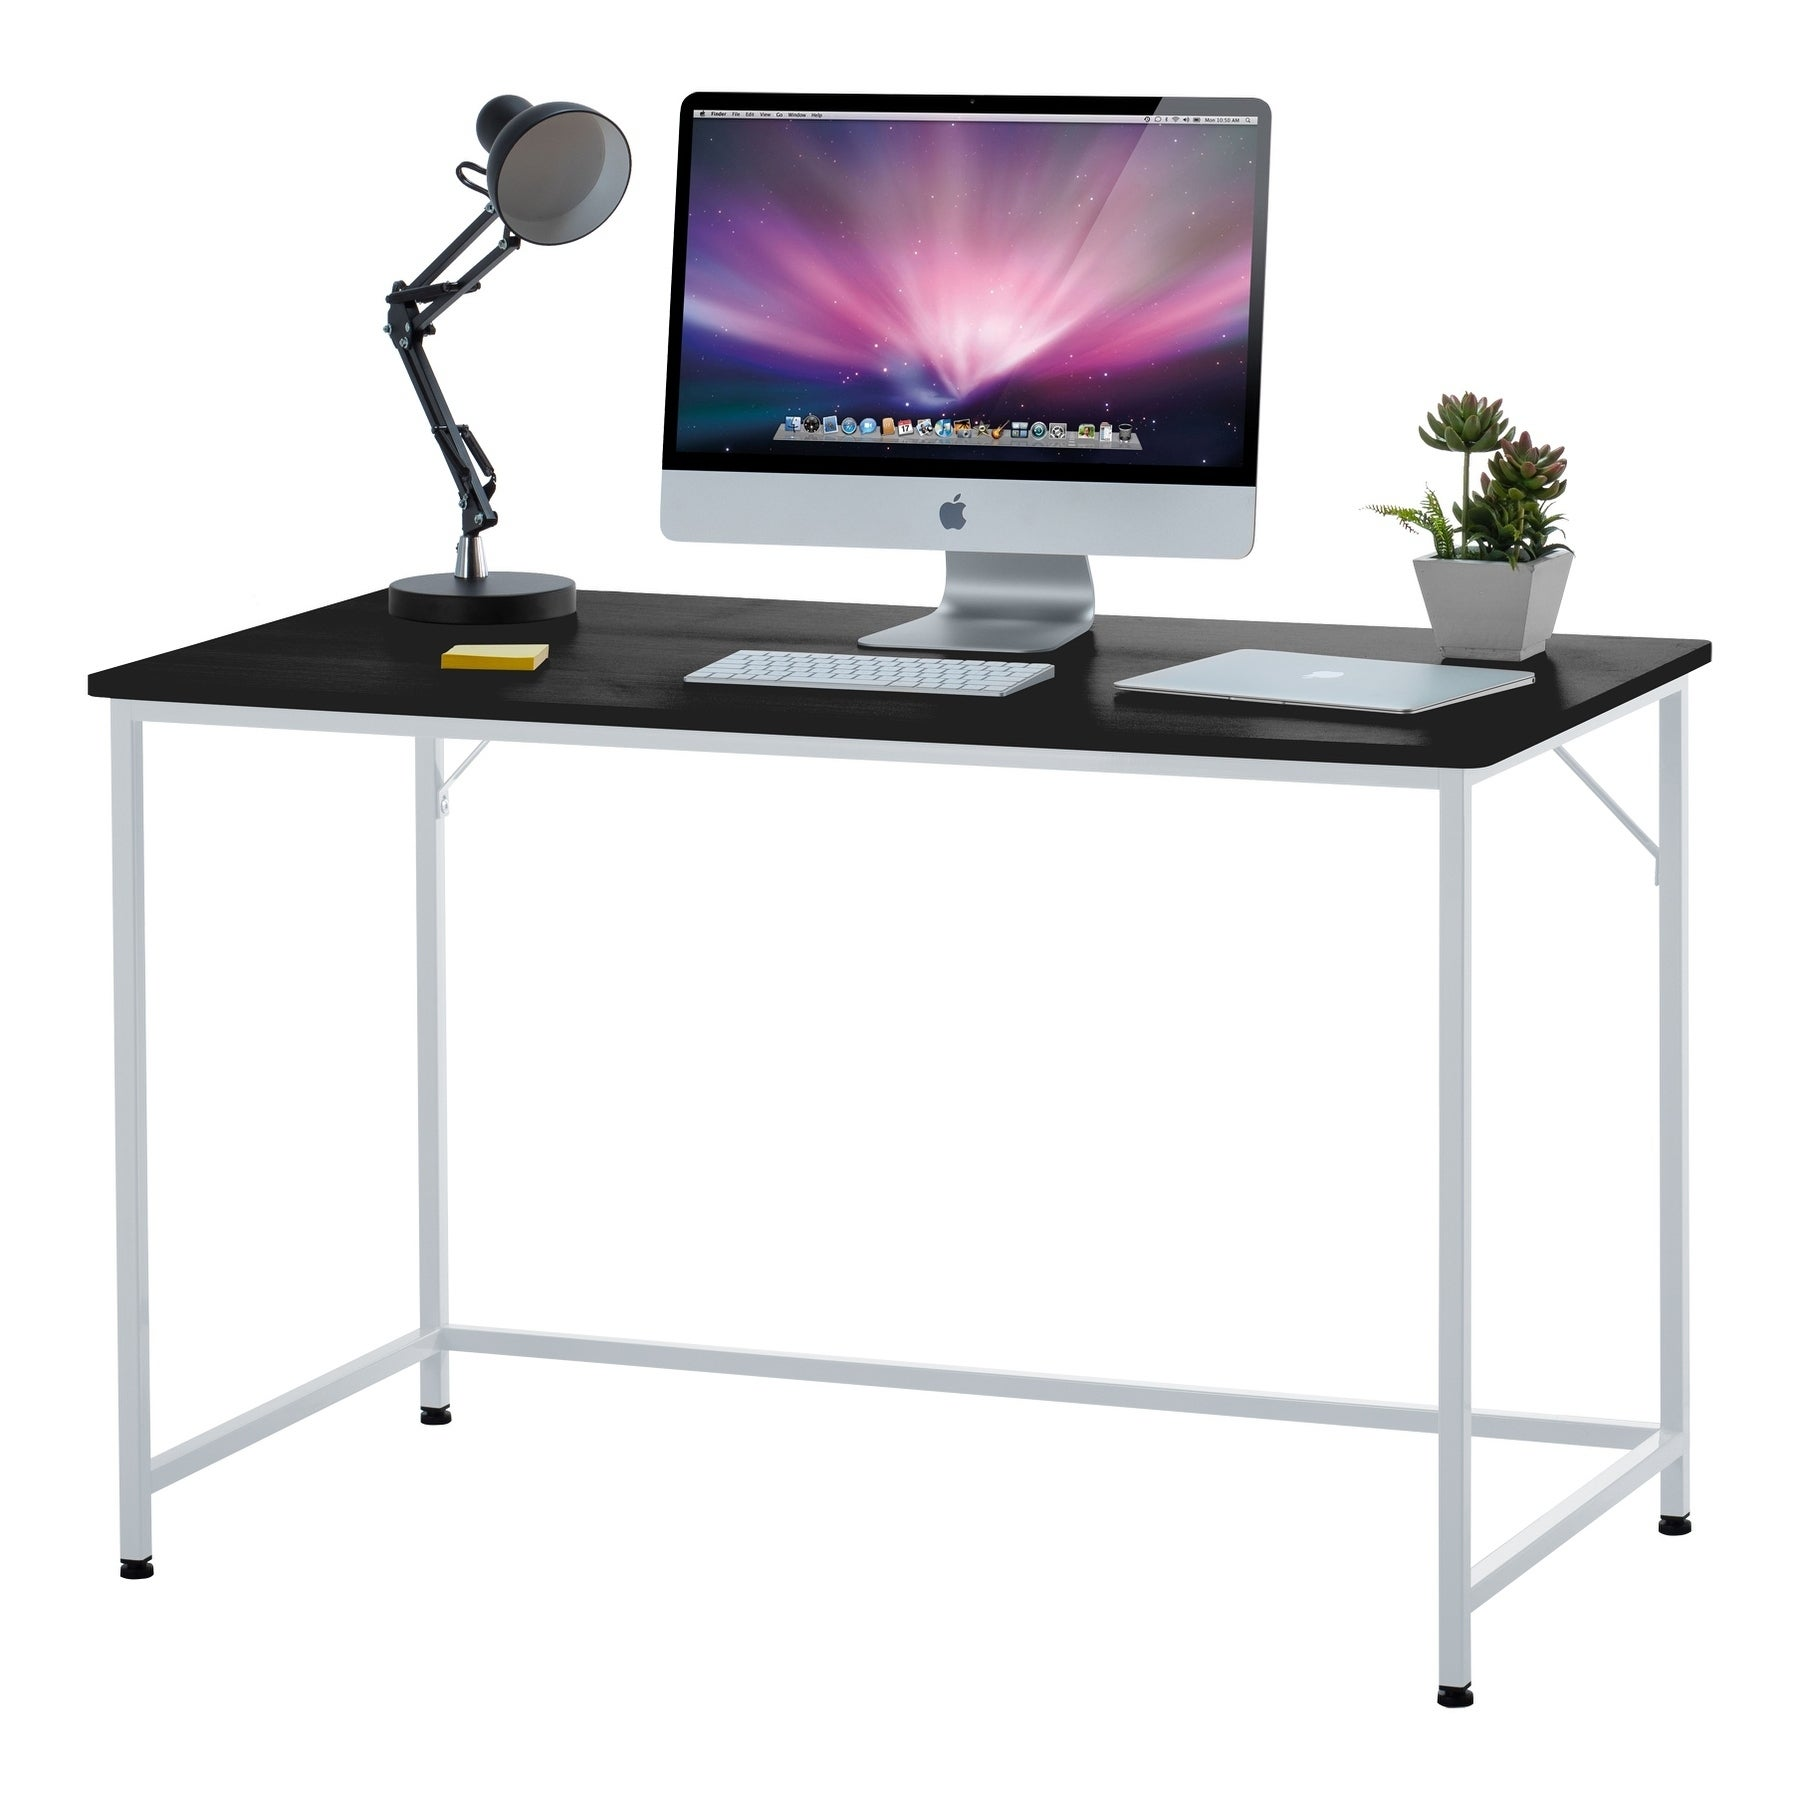 Black Particle Board Furniture Our Best Home Goods Deals Online At